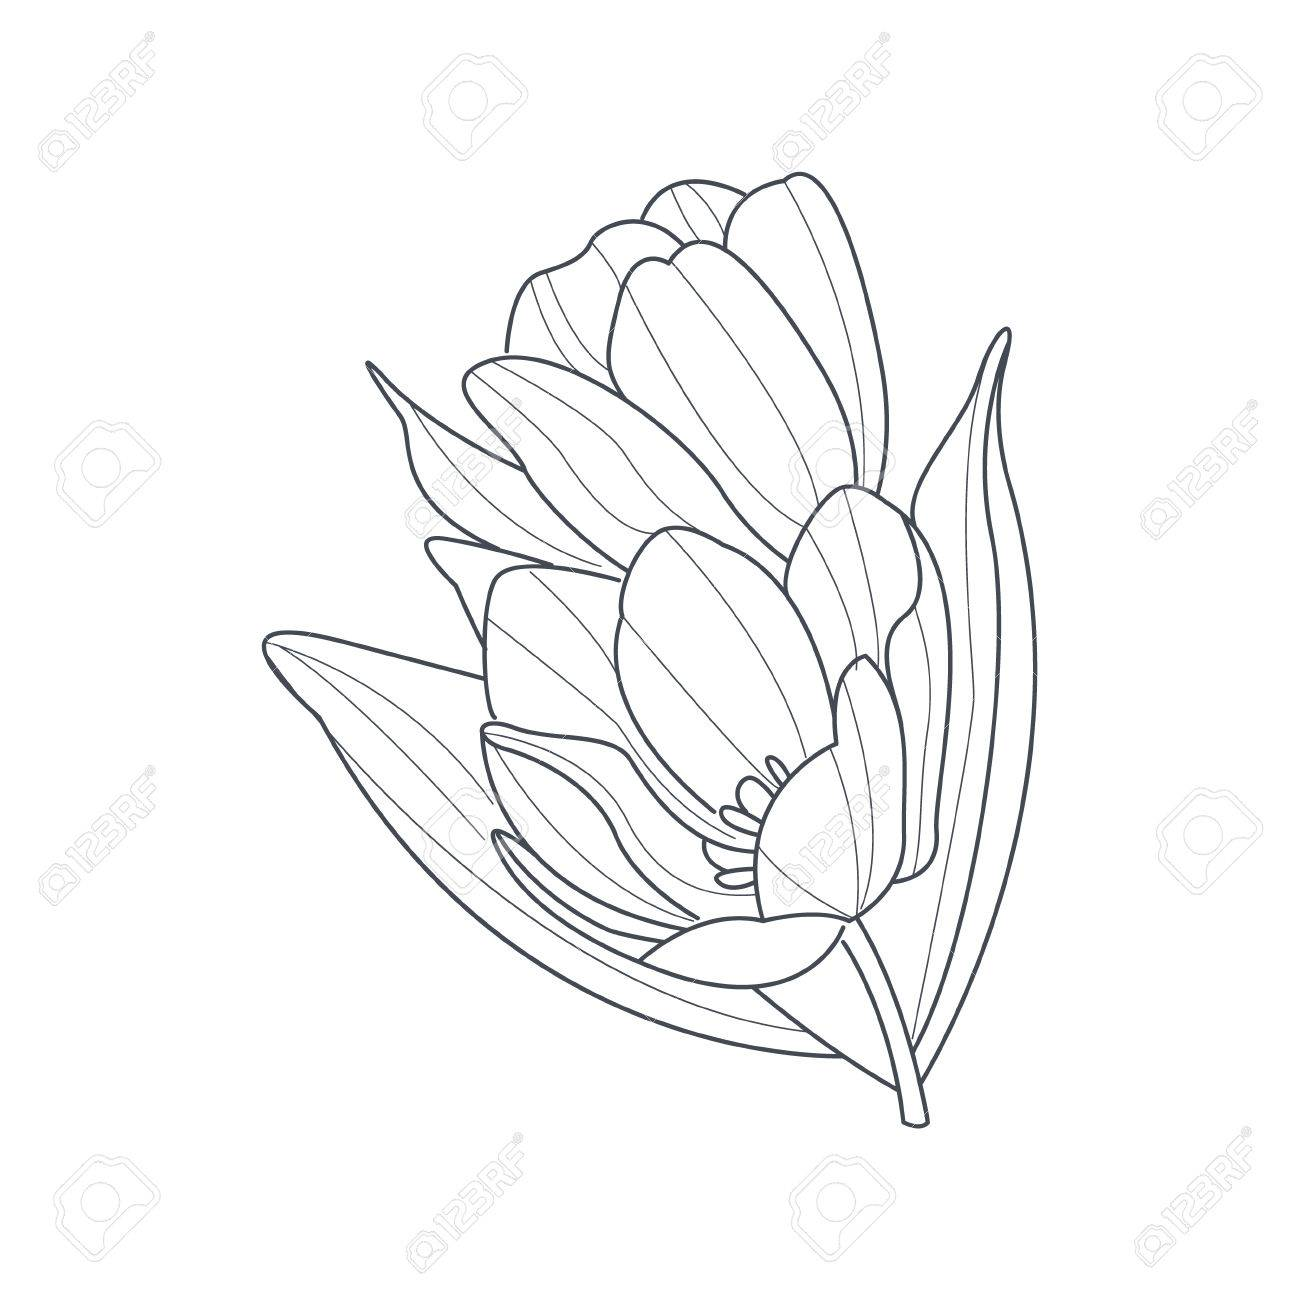 1300x1300 Tulip Flower Monochrome Drawing For Coloring Book Hand Drawn